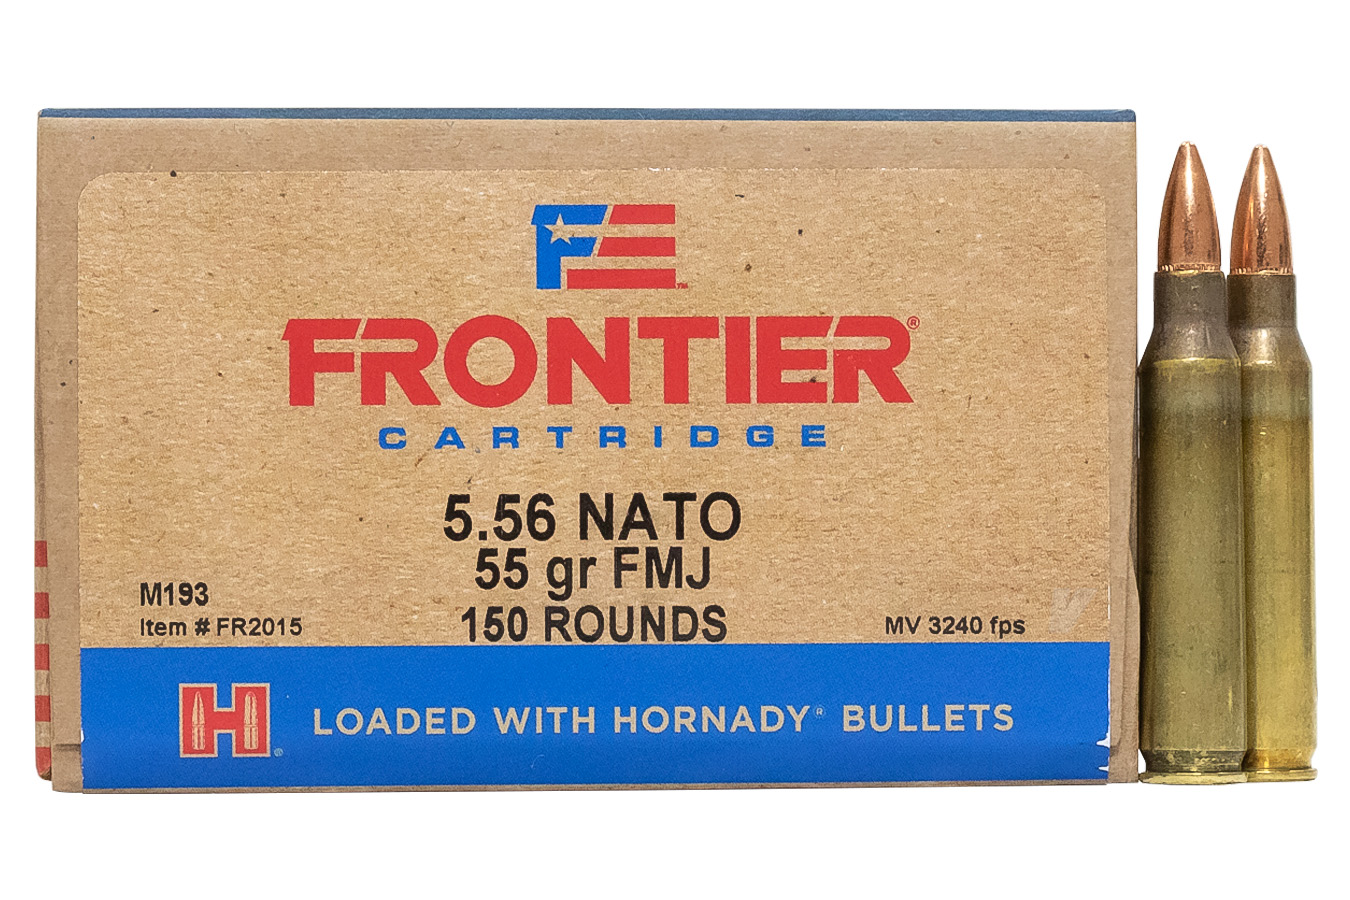 5.56 NATO 55 GR FMJ FRONTIER (XM193) (150 - ORIENTED)